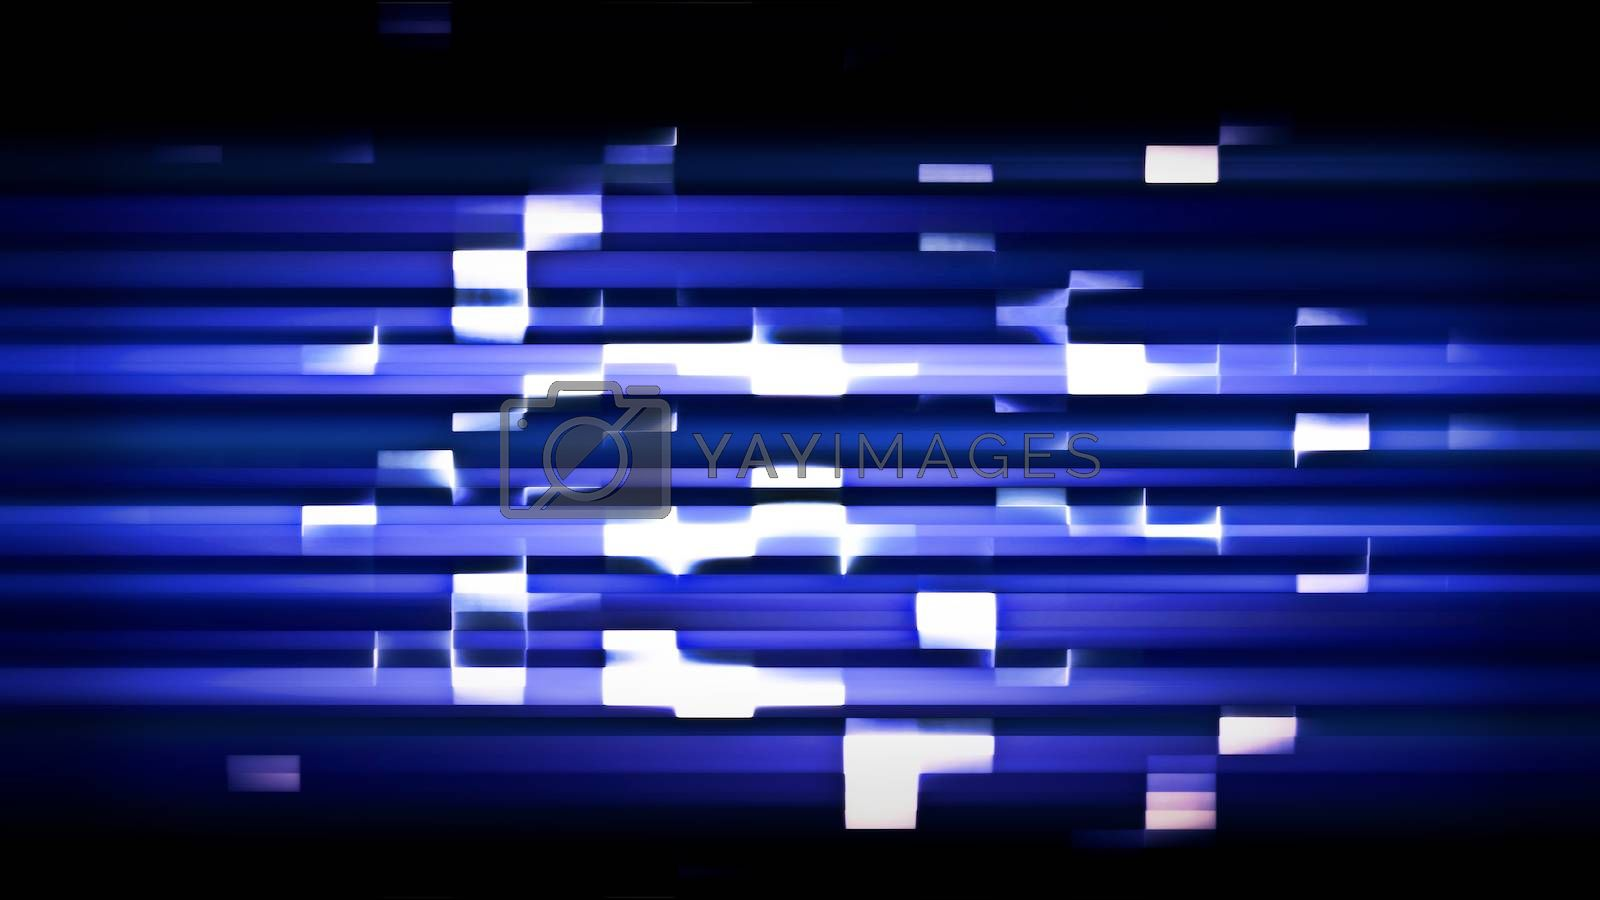 Future Tech 0281 - Futuristic technology abstract screen with digital noise and light effects.